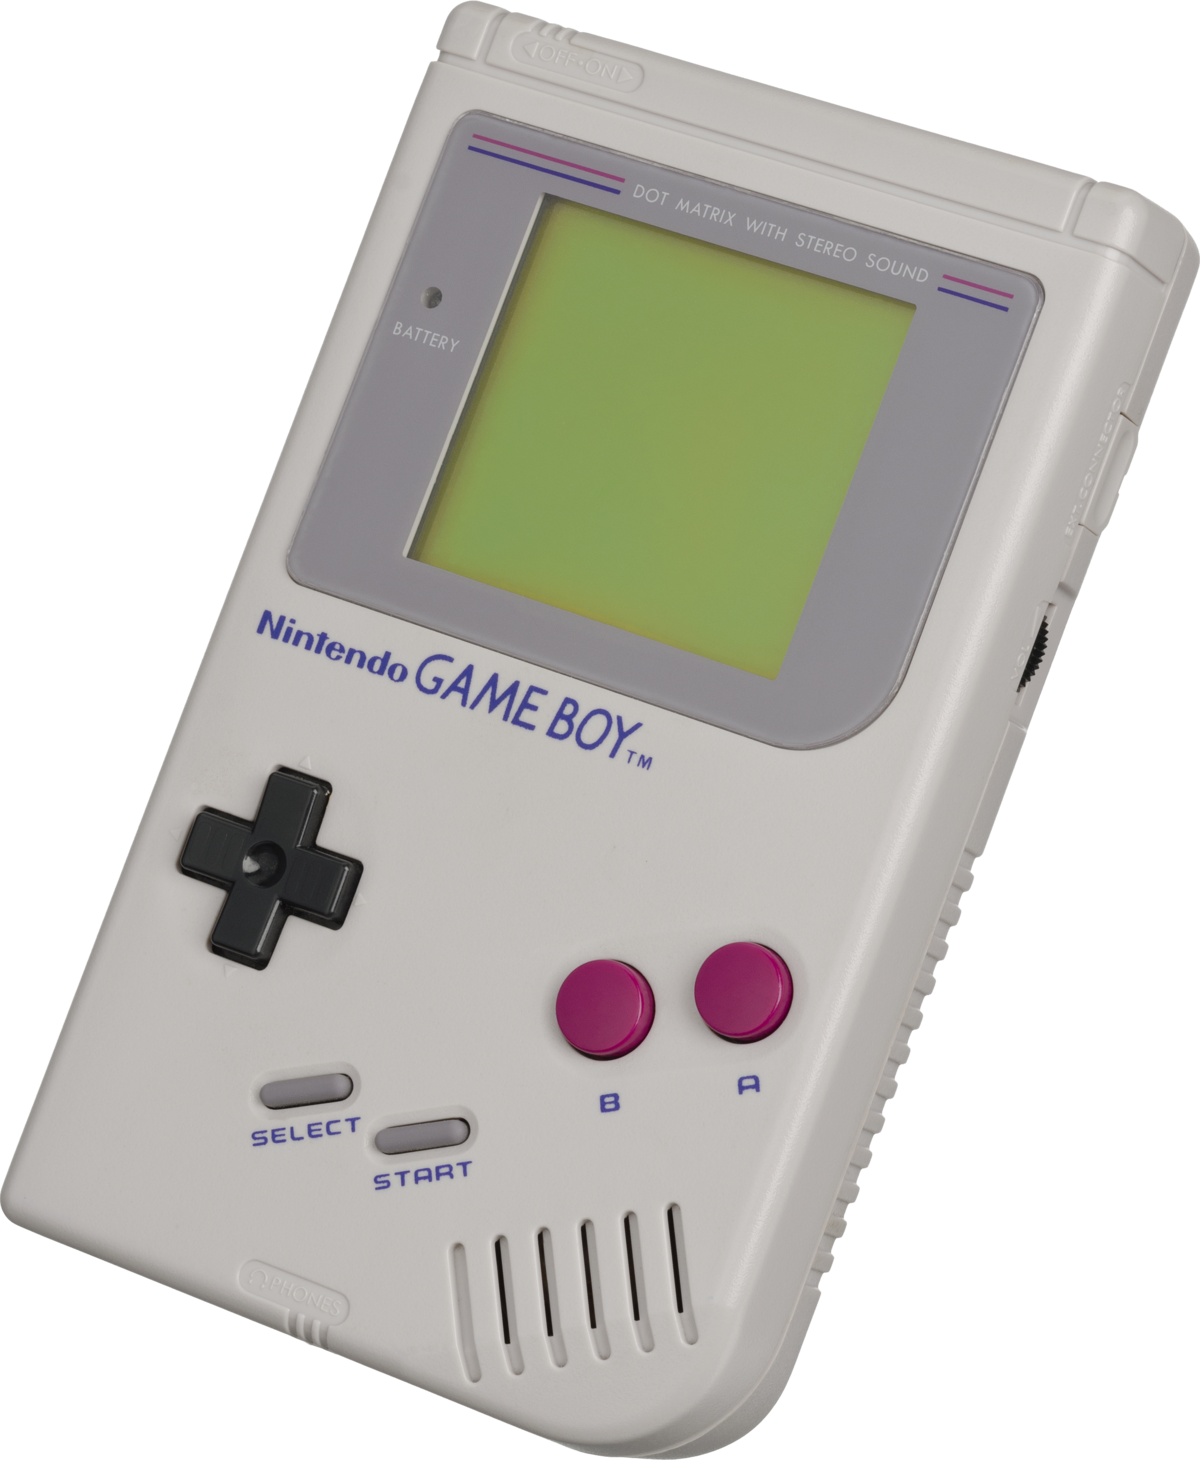 Game boy wikipedia - How much is a super nintendo console worth ...